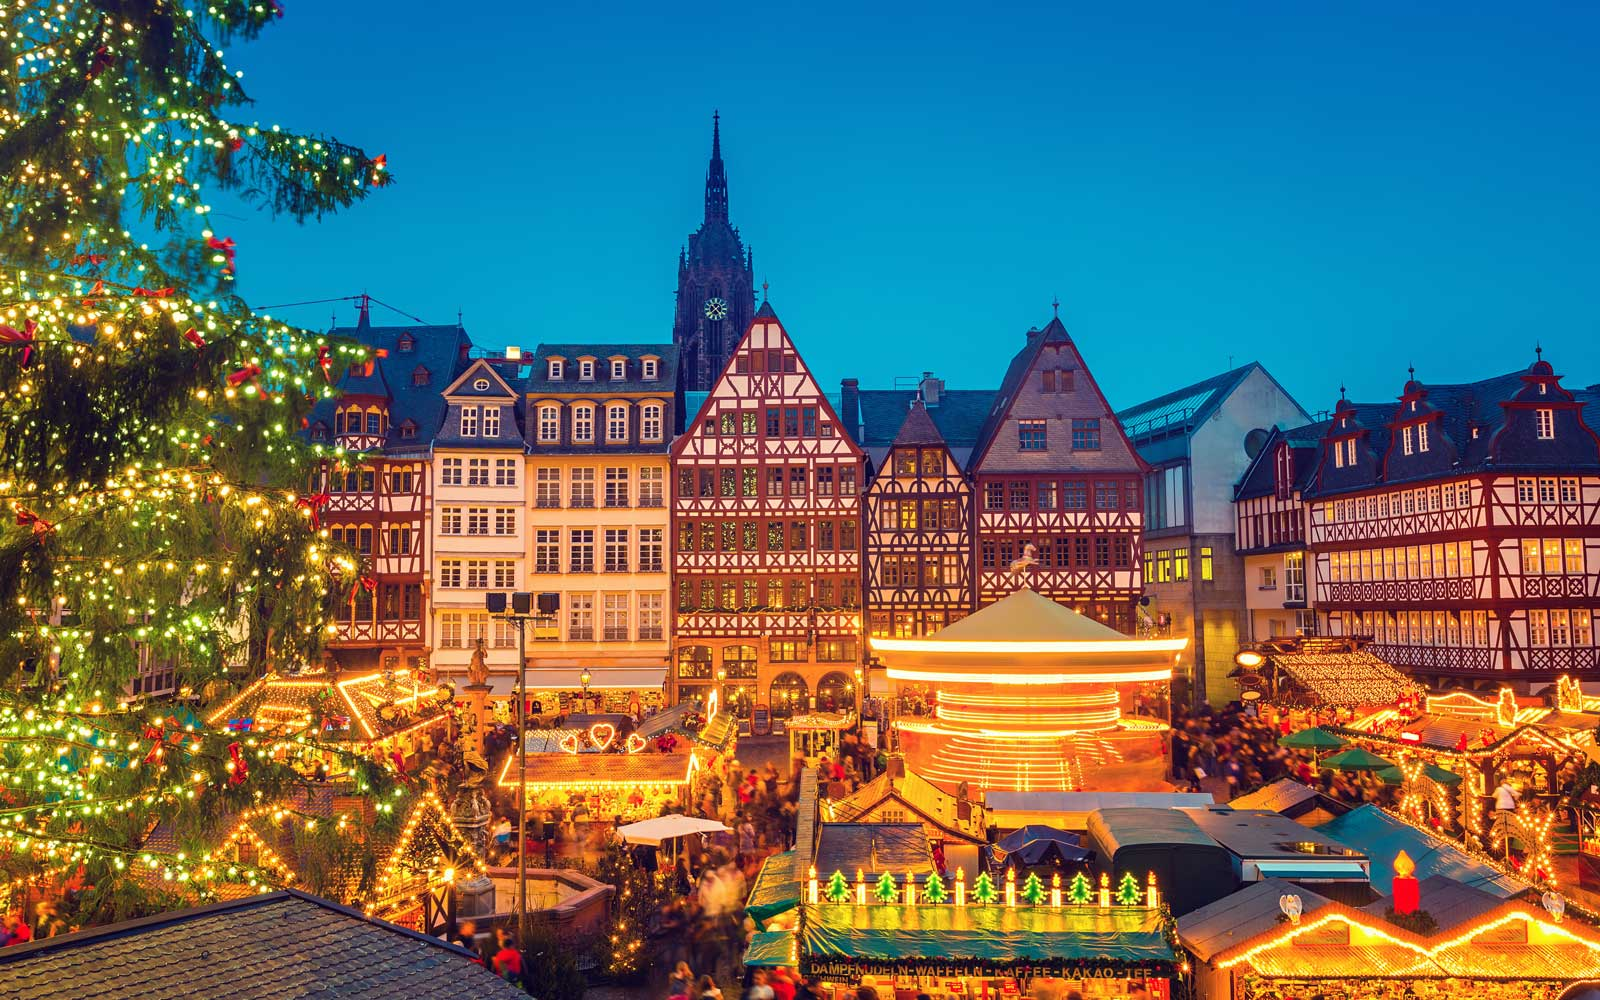 Head to Europe's famed Christmas markets starting at under $350 round-trip this year.